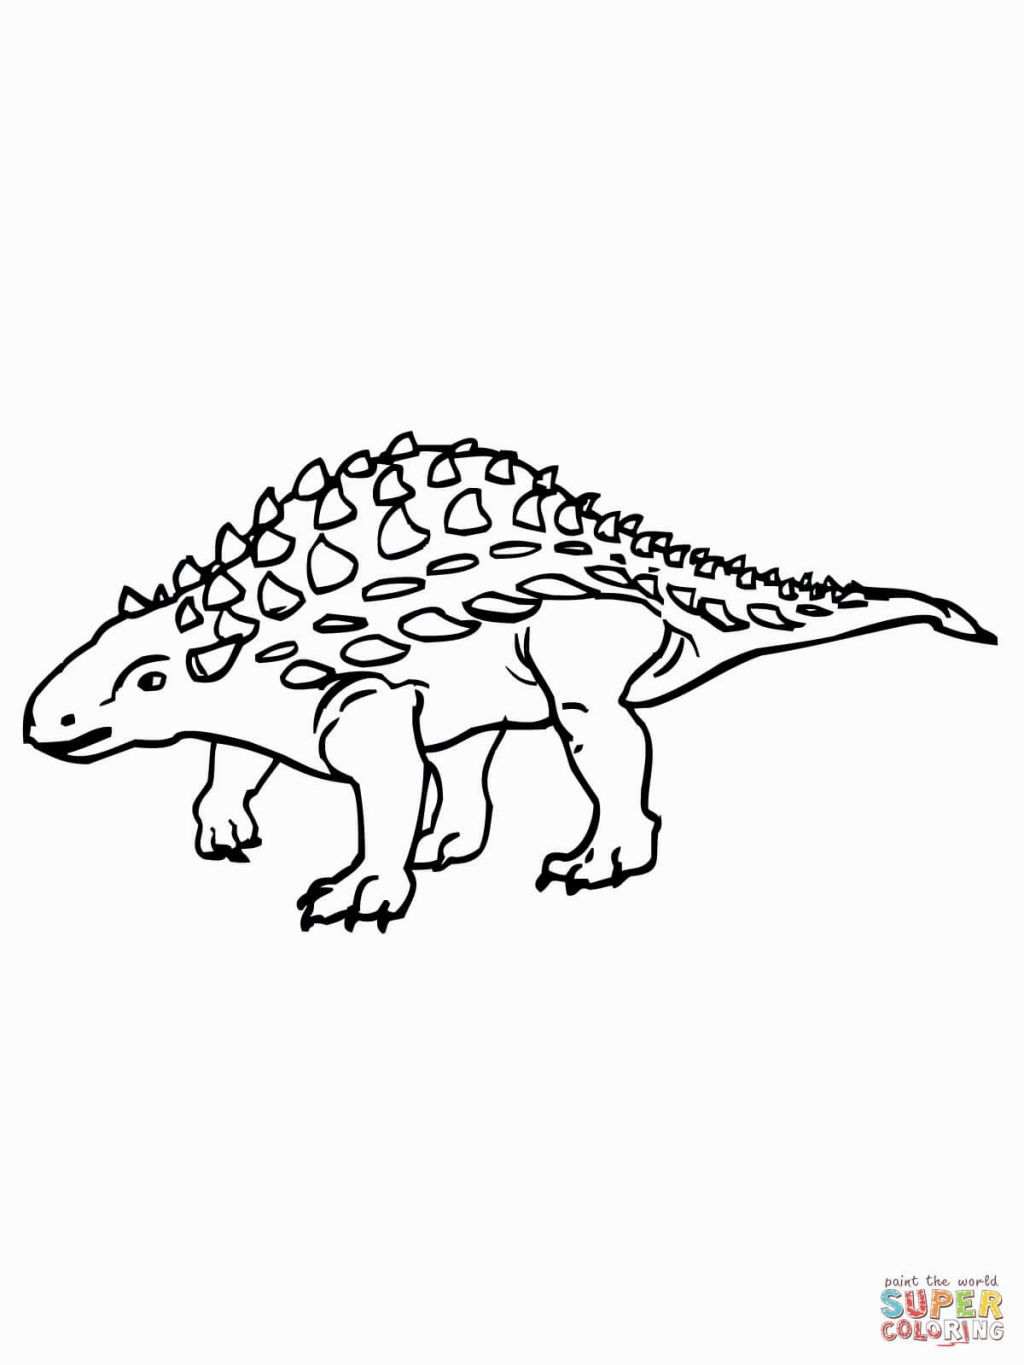 Ankylosaurus Coloring Page | Coloring Pages | Pinterest